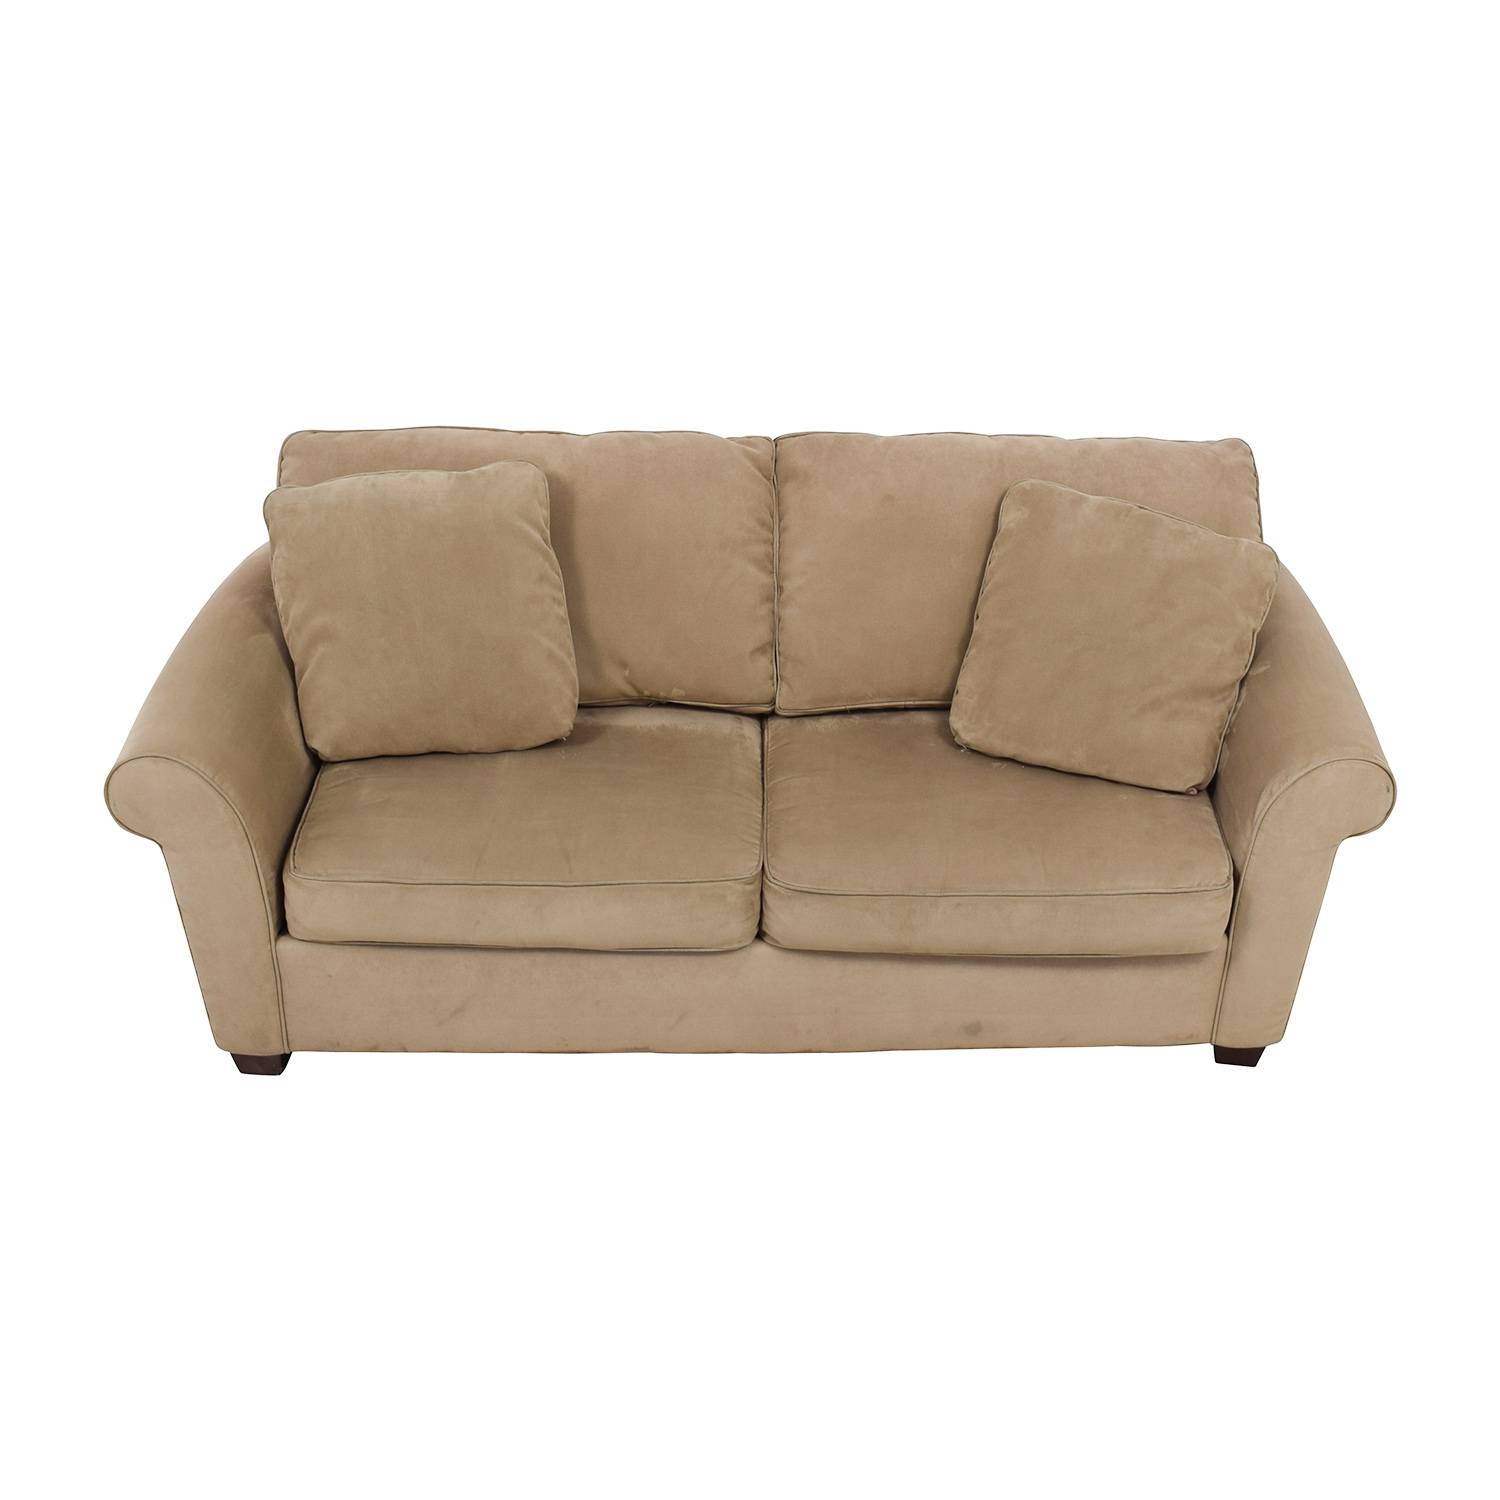 70% Off - Bauhaus Bauhaus Microfiber Tan Oversized Couch / Sofas intended for Bauhaus Sleeper Sofa (Image 5 of 30)